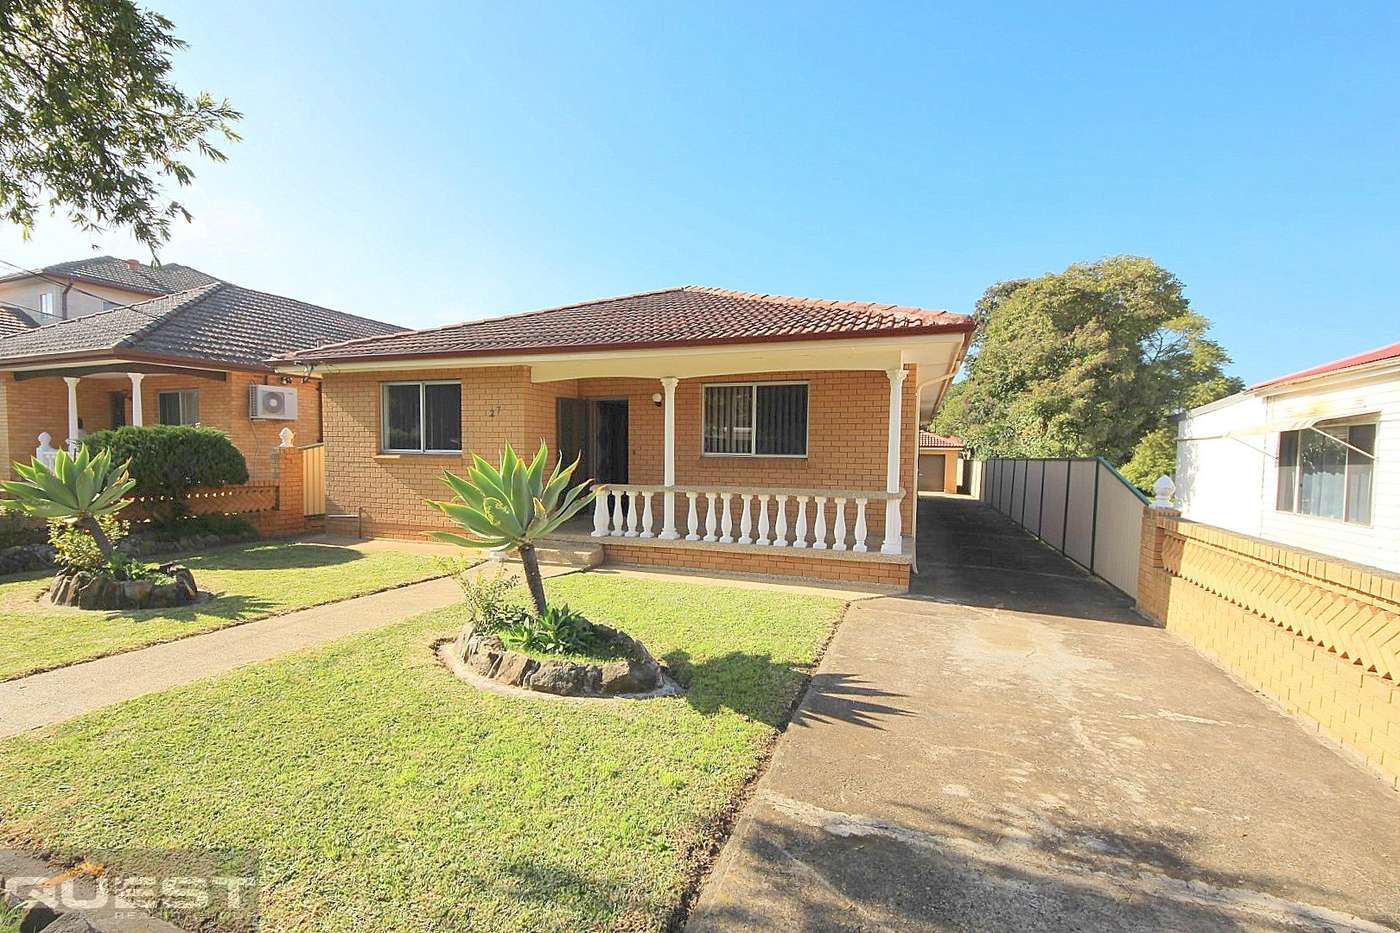 Main view of Homely house listing, 27 Allum Street, Bankstown, NSW 2200